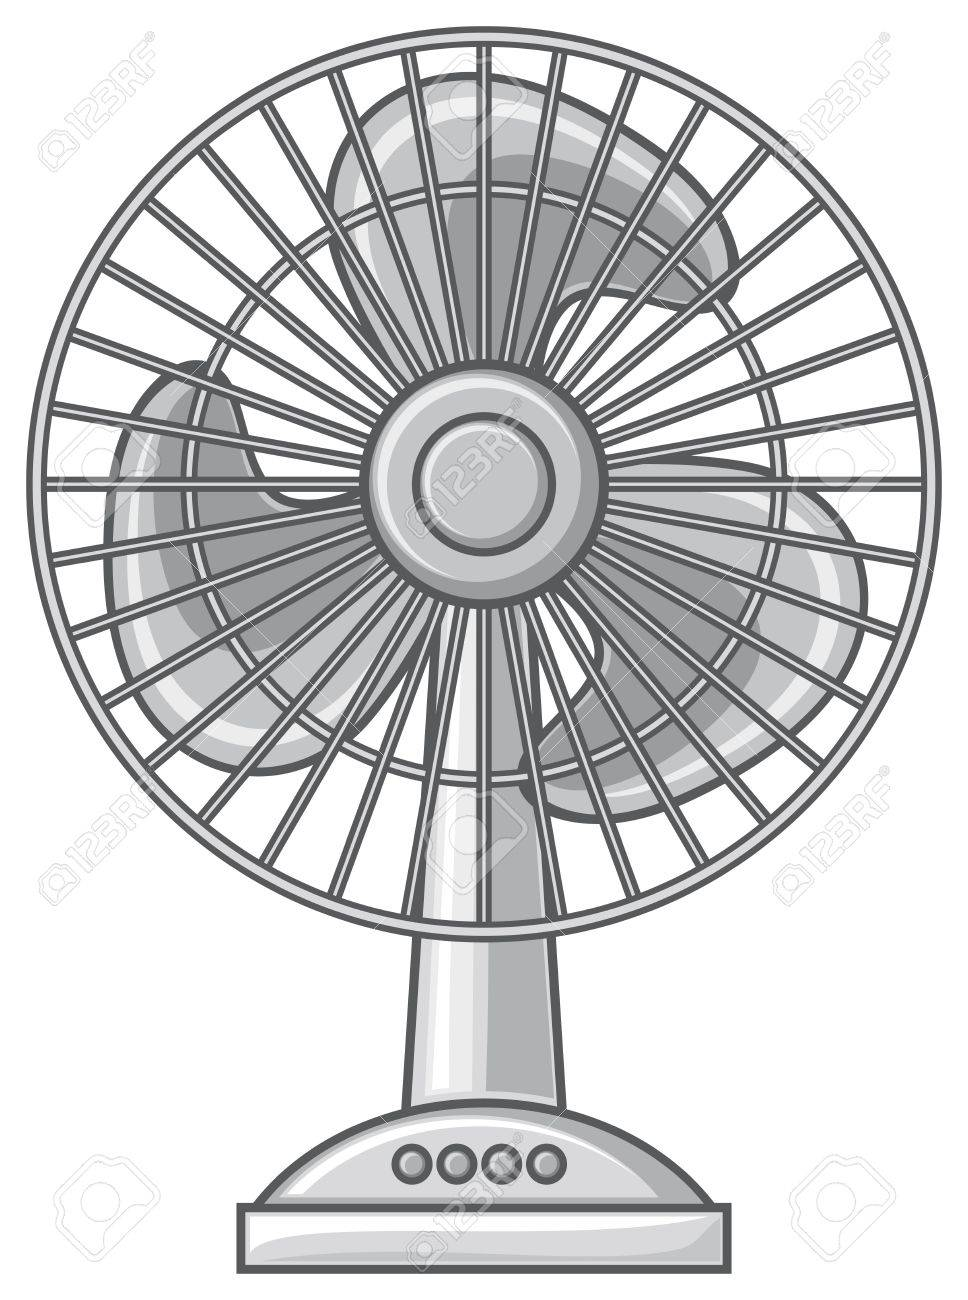 Table fan clipart 5 » Clipart Station.